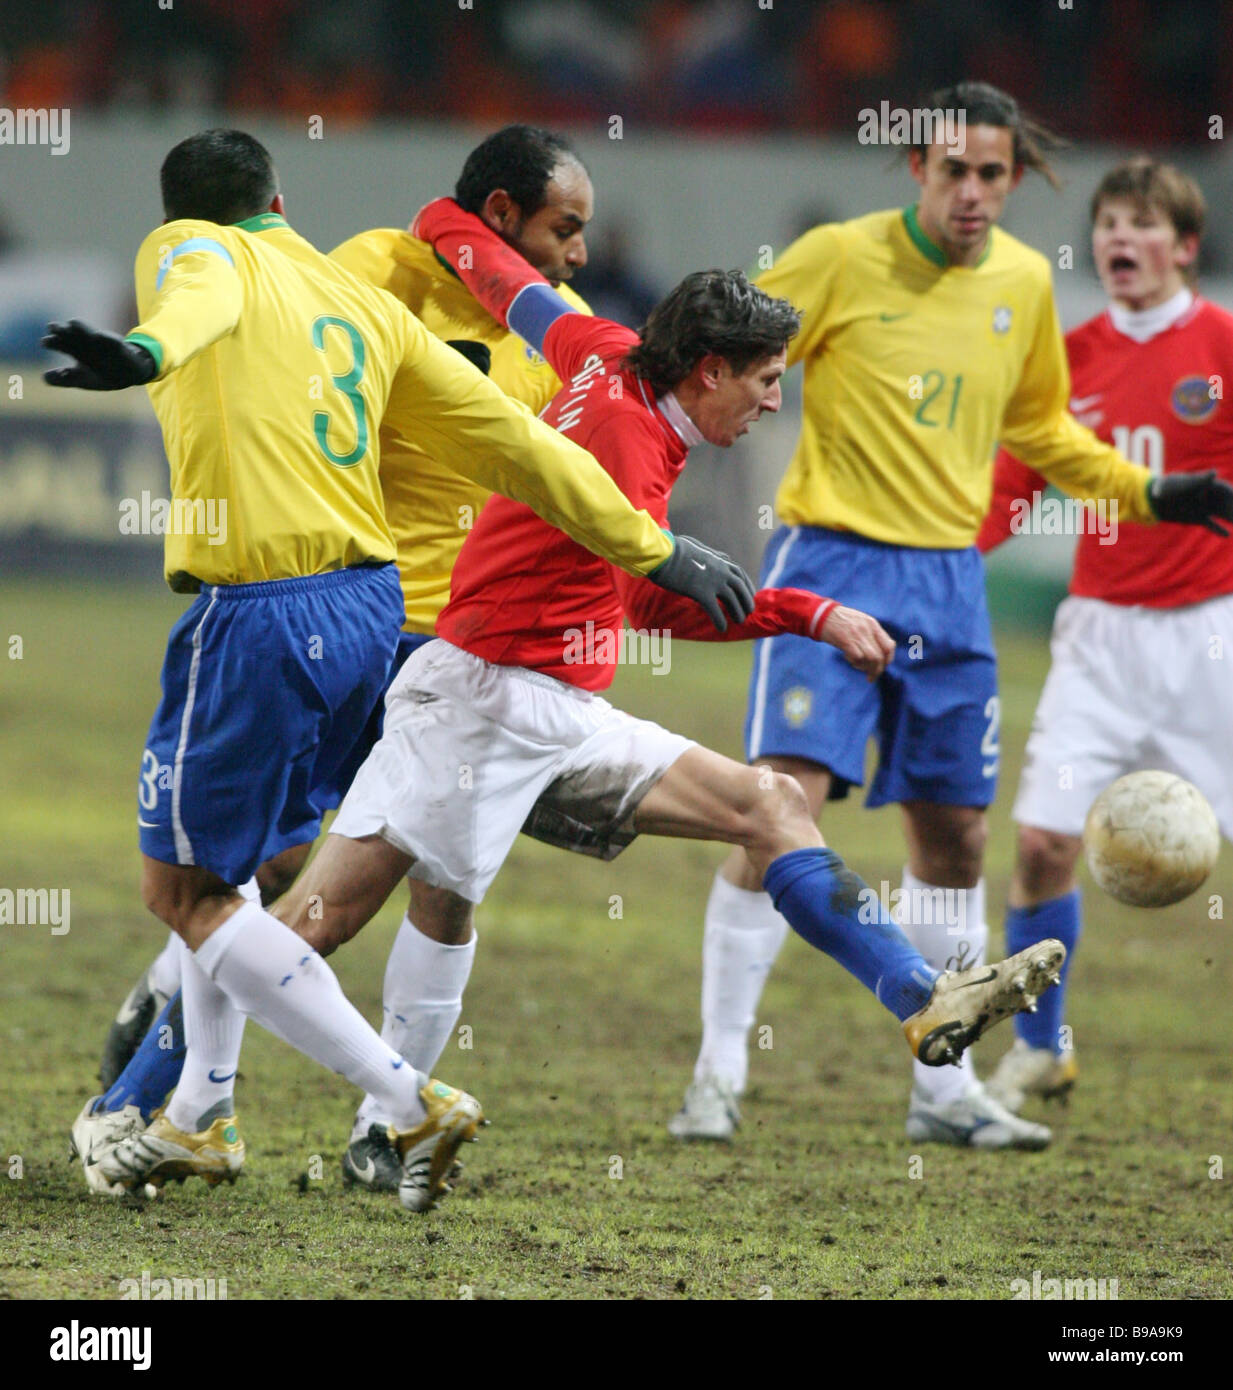 A friendly match between the Brazilian and Russian football teams at the Lokomotiv stadium in Moscow Brazil won - Stock Image